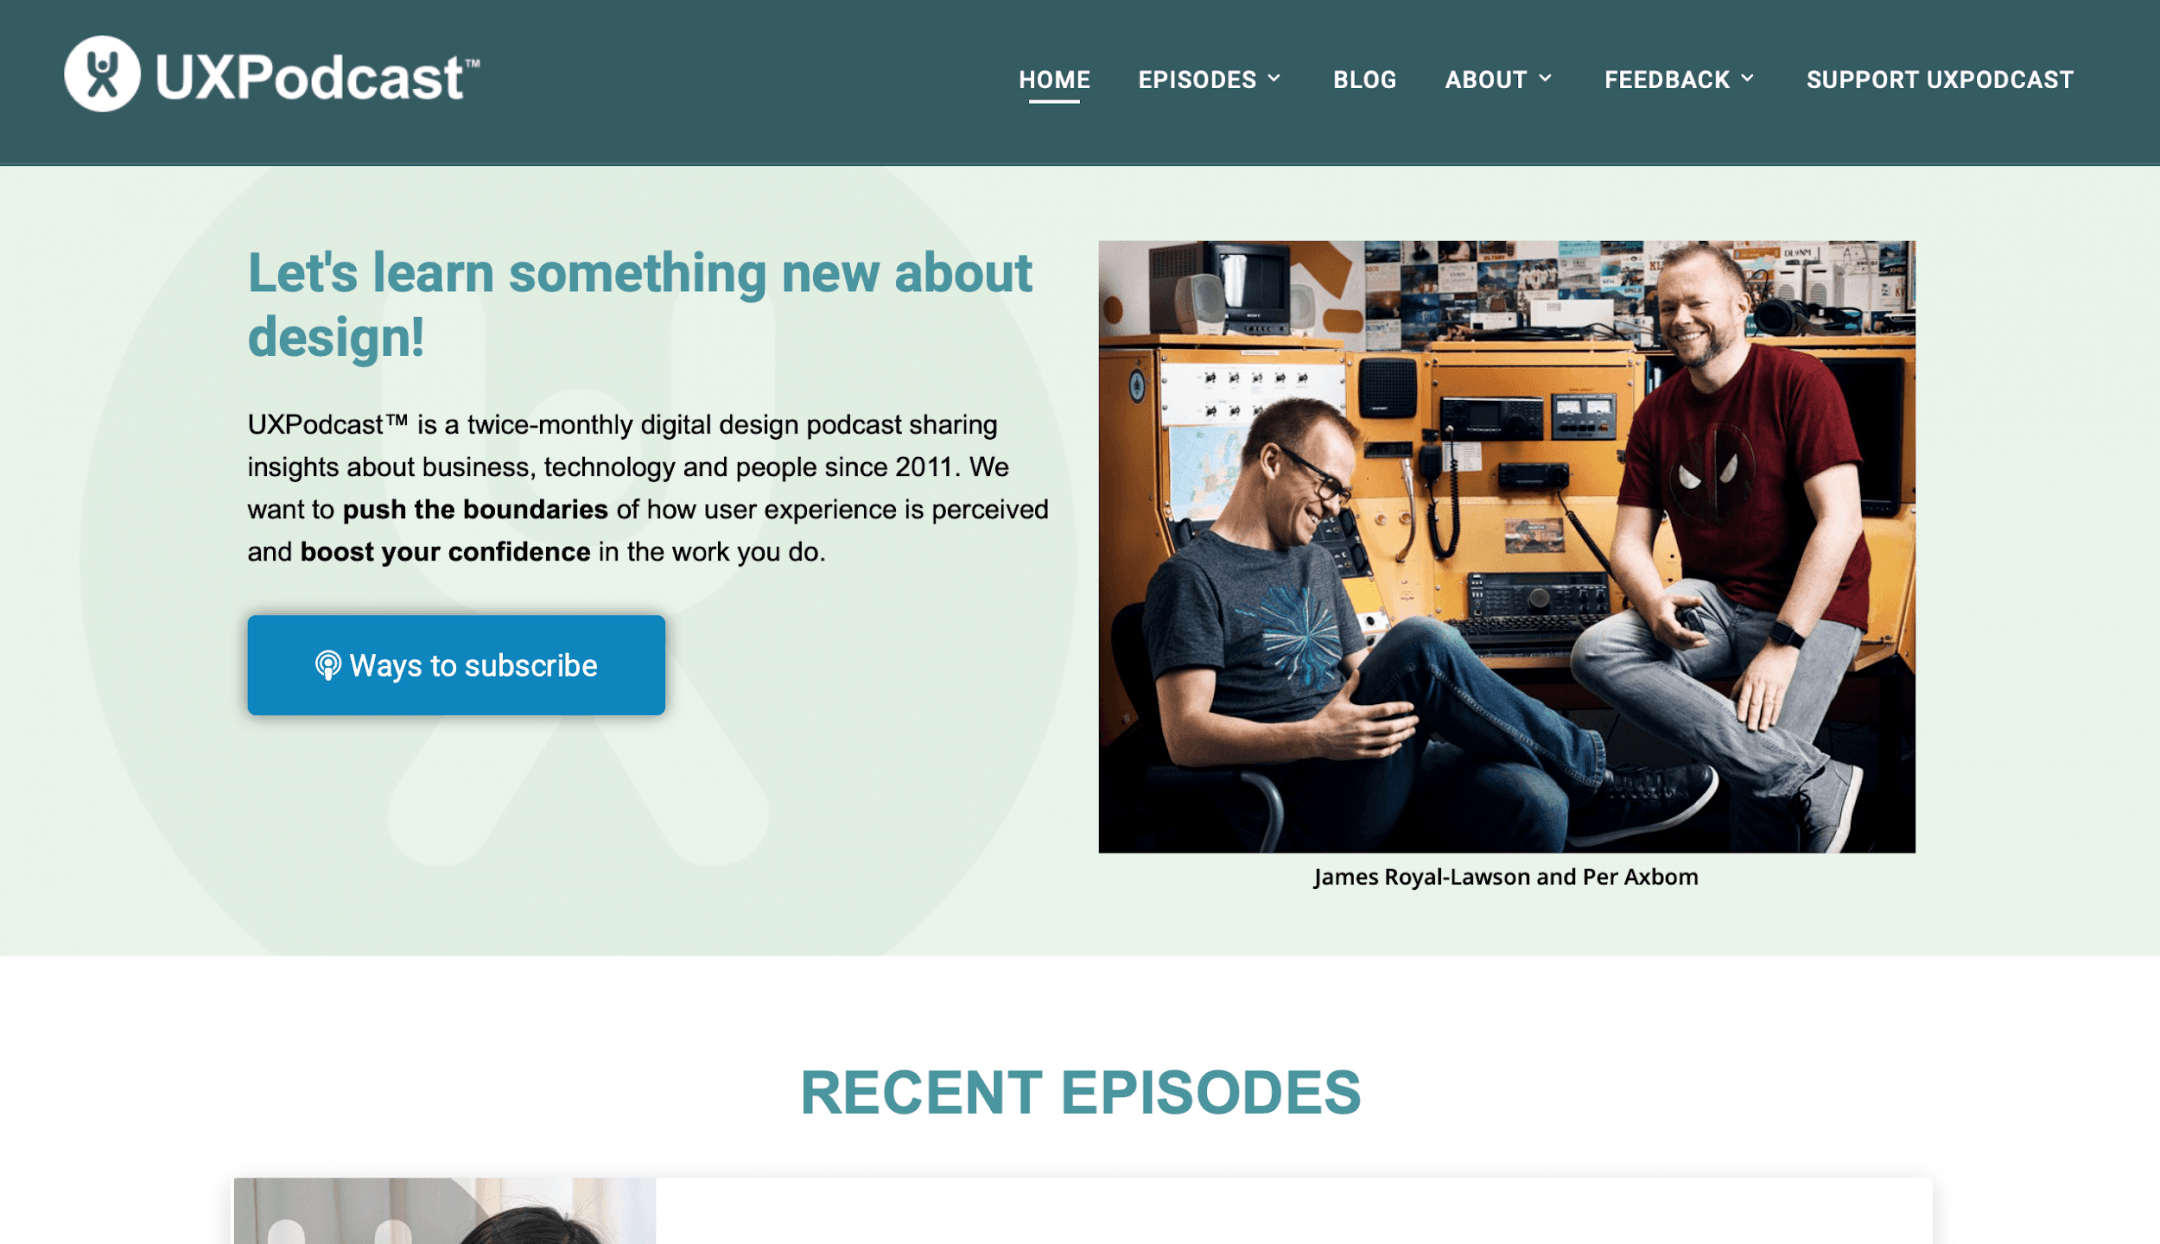 A screenshot of the UXPodcast homepage